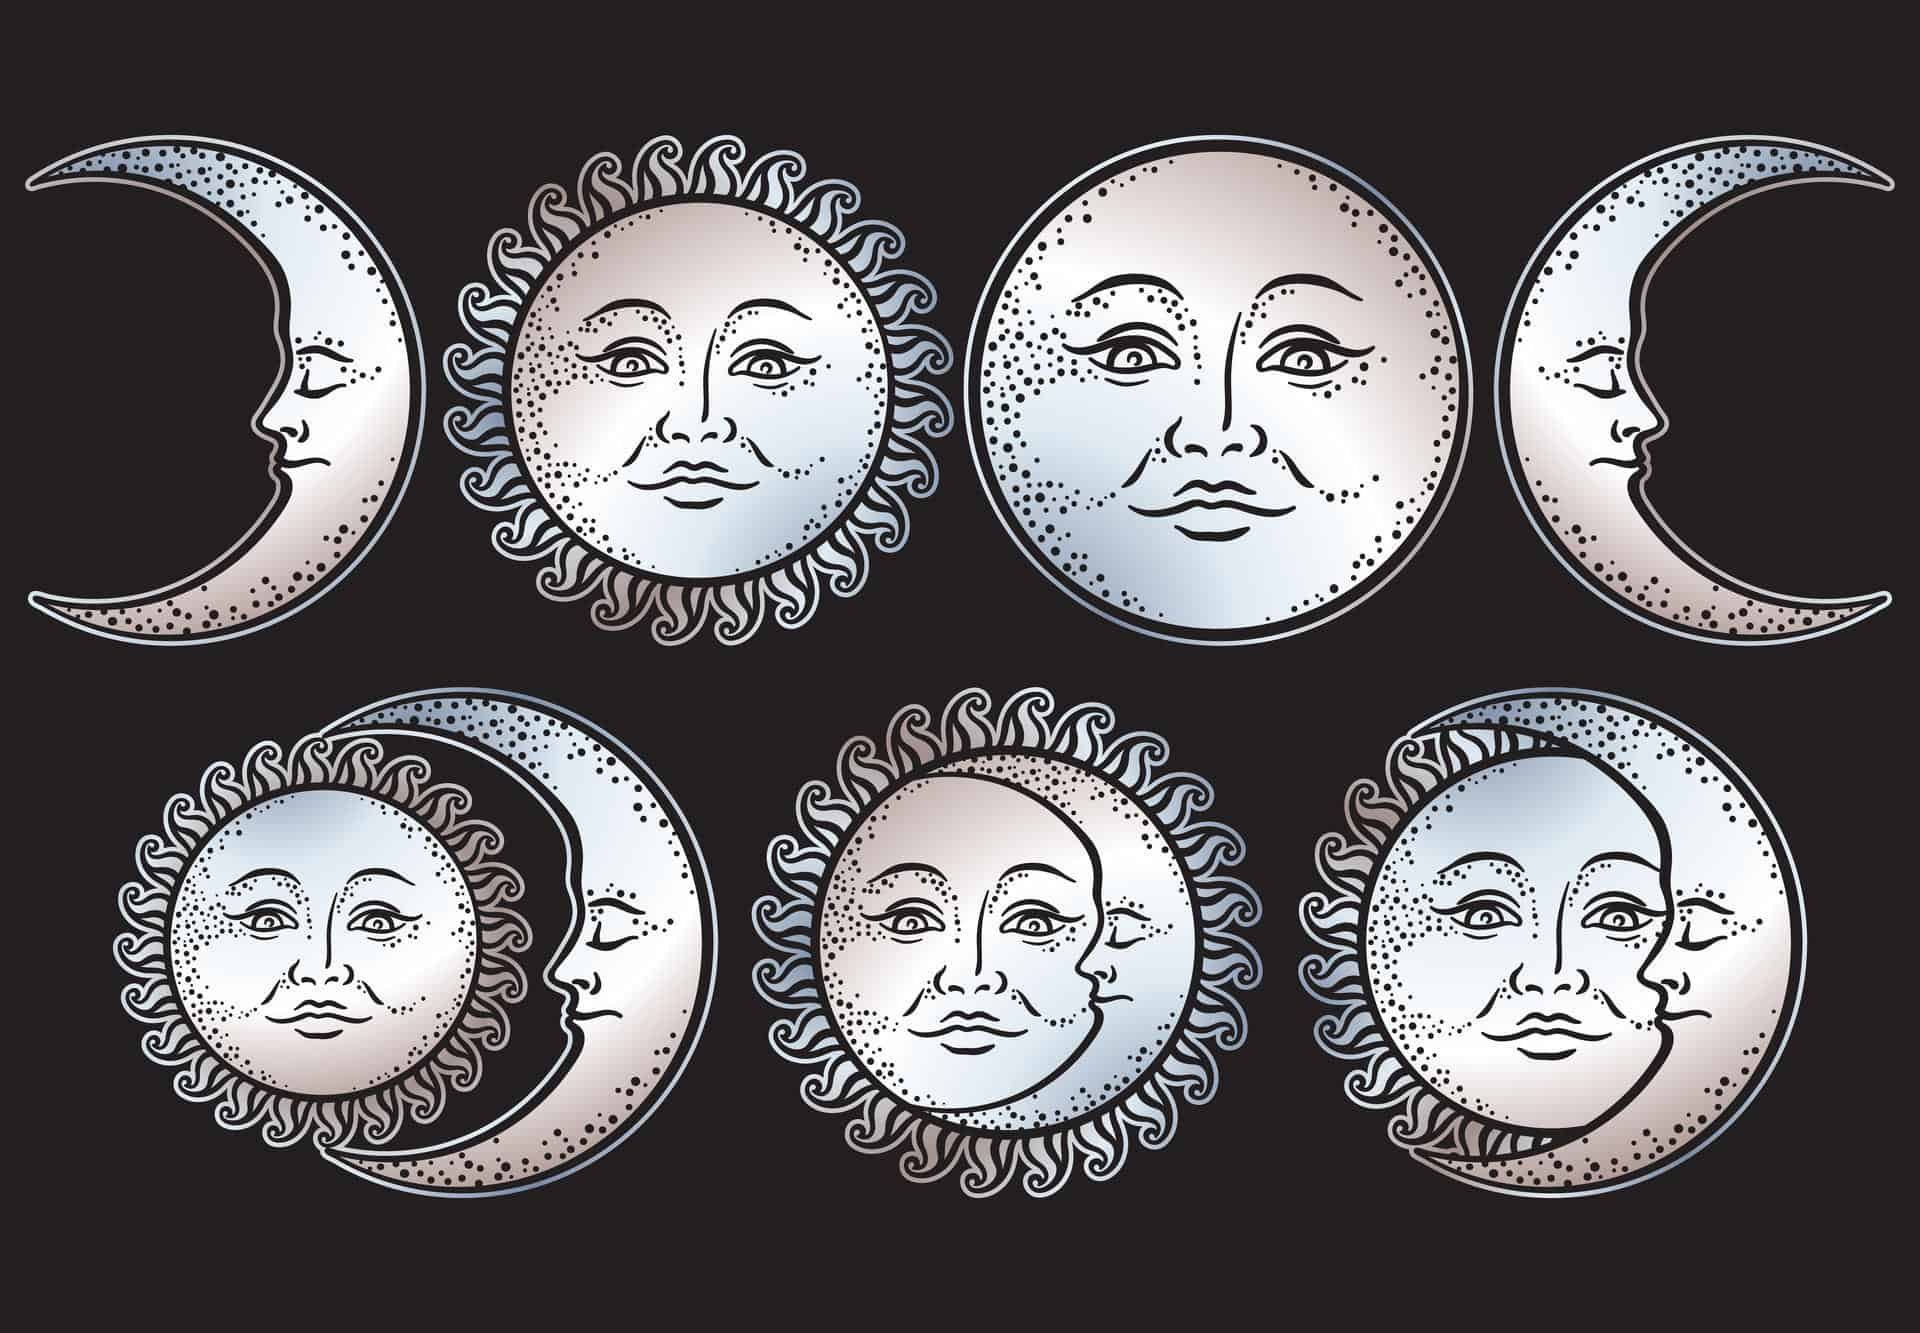 personification of moon phases